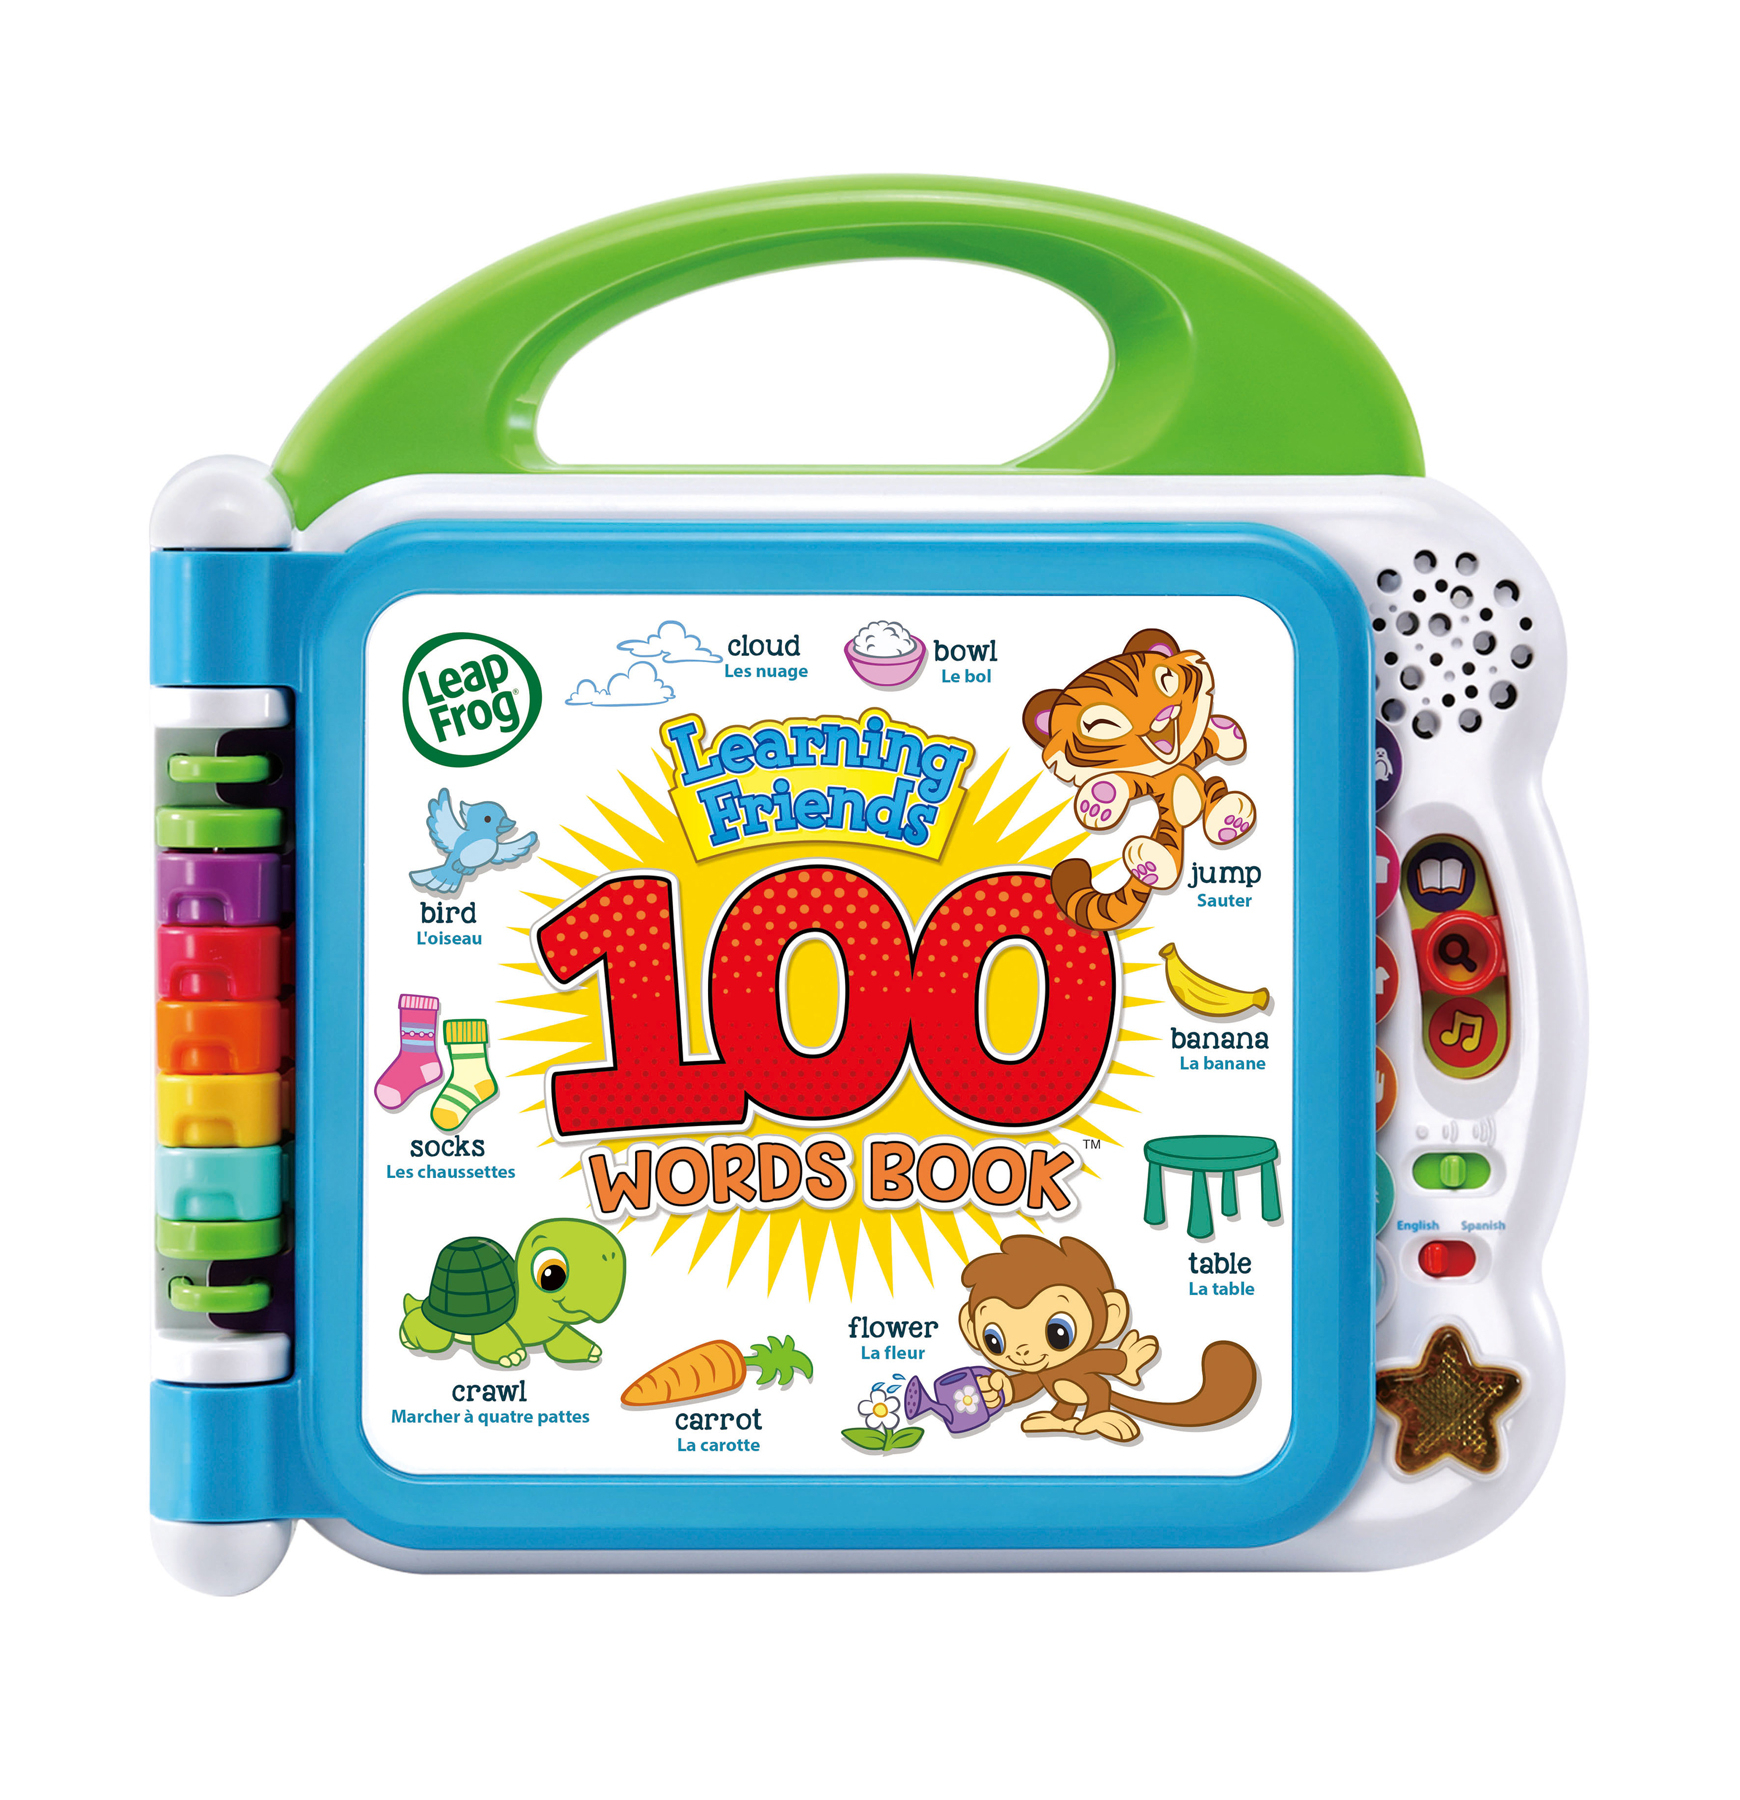 LeapFrog Learning Friends 100 Words Book Toys & Character